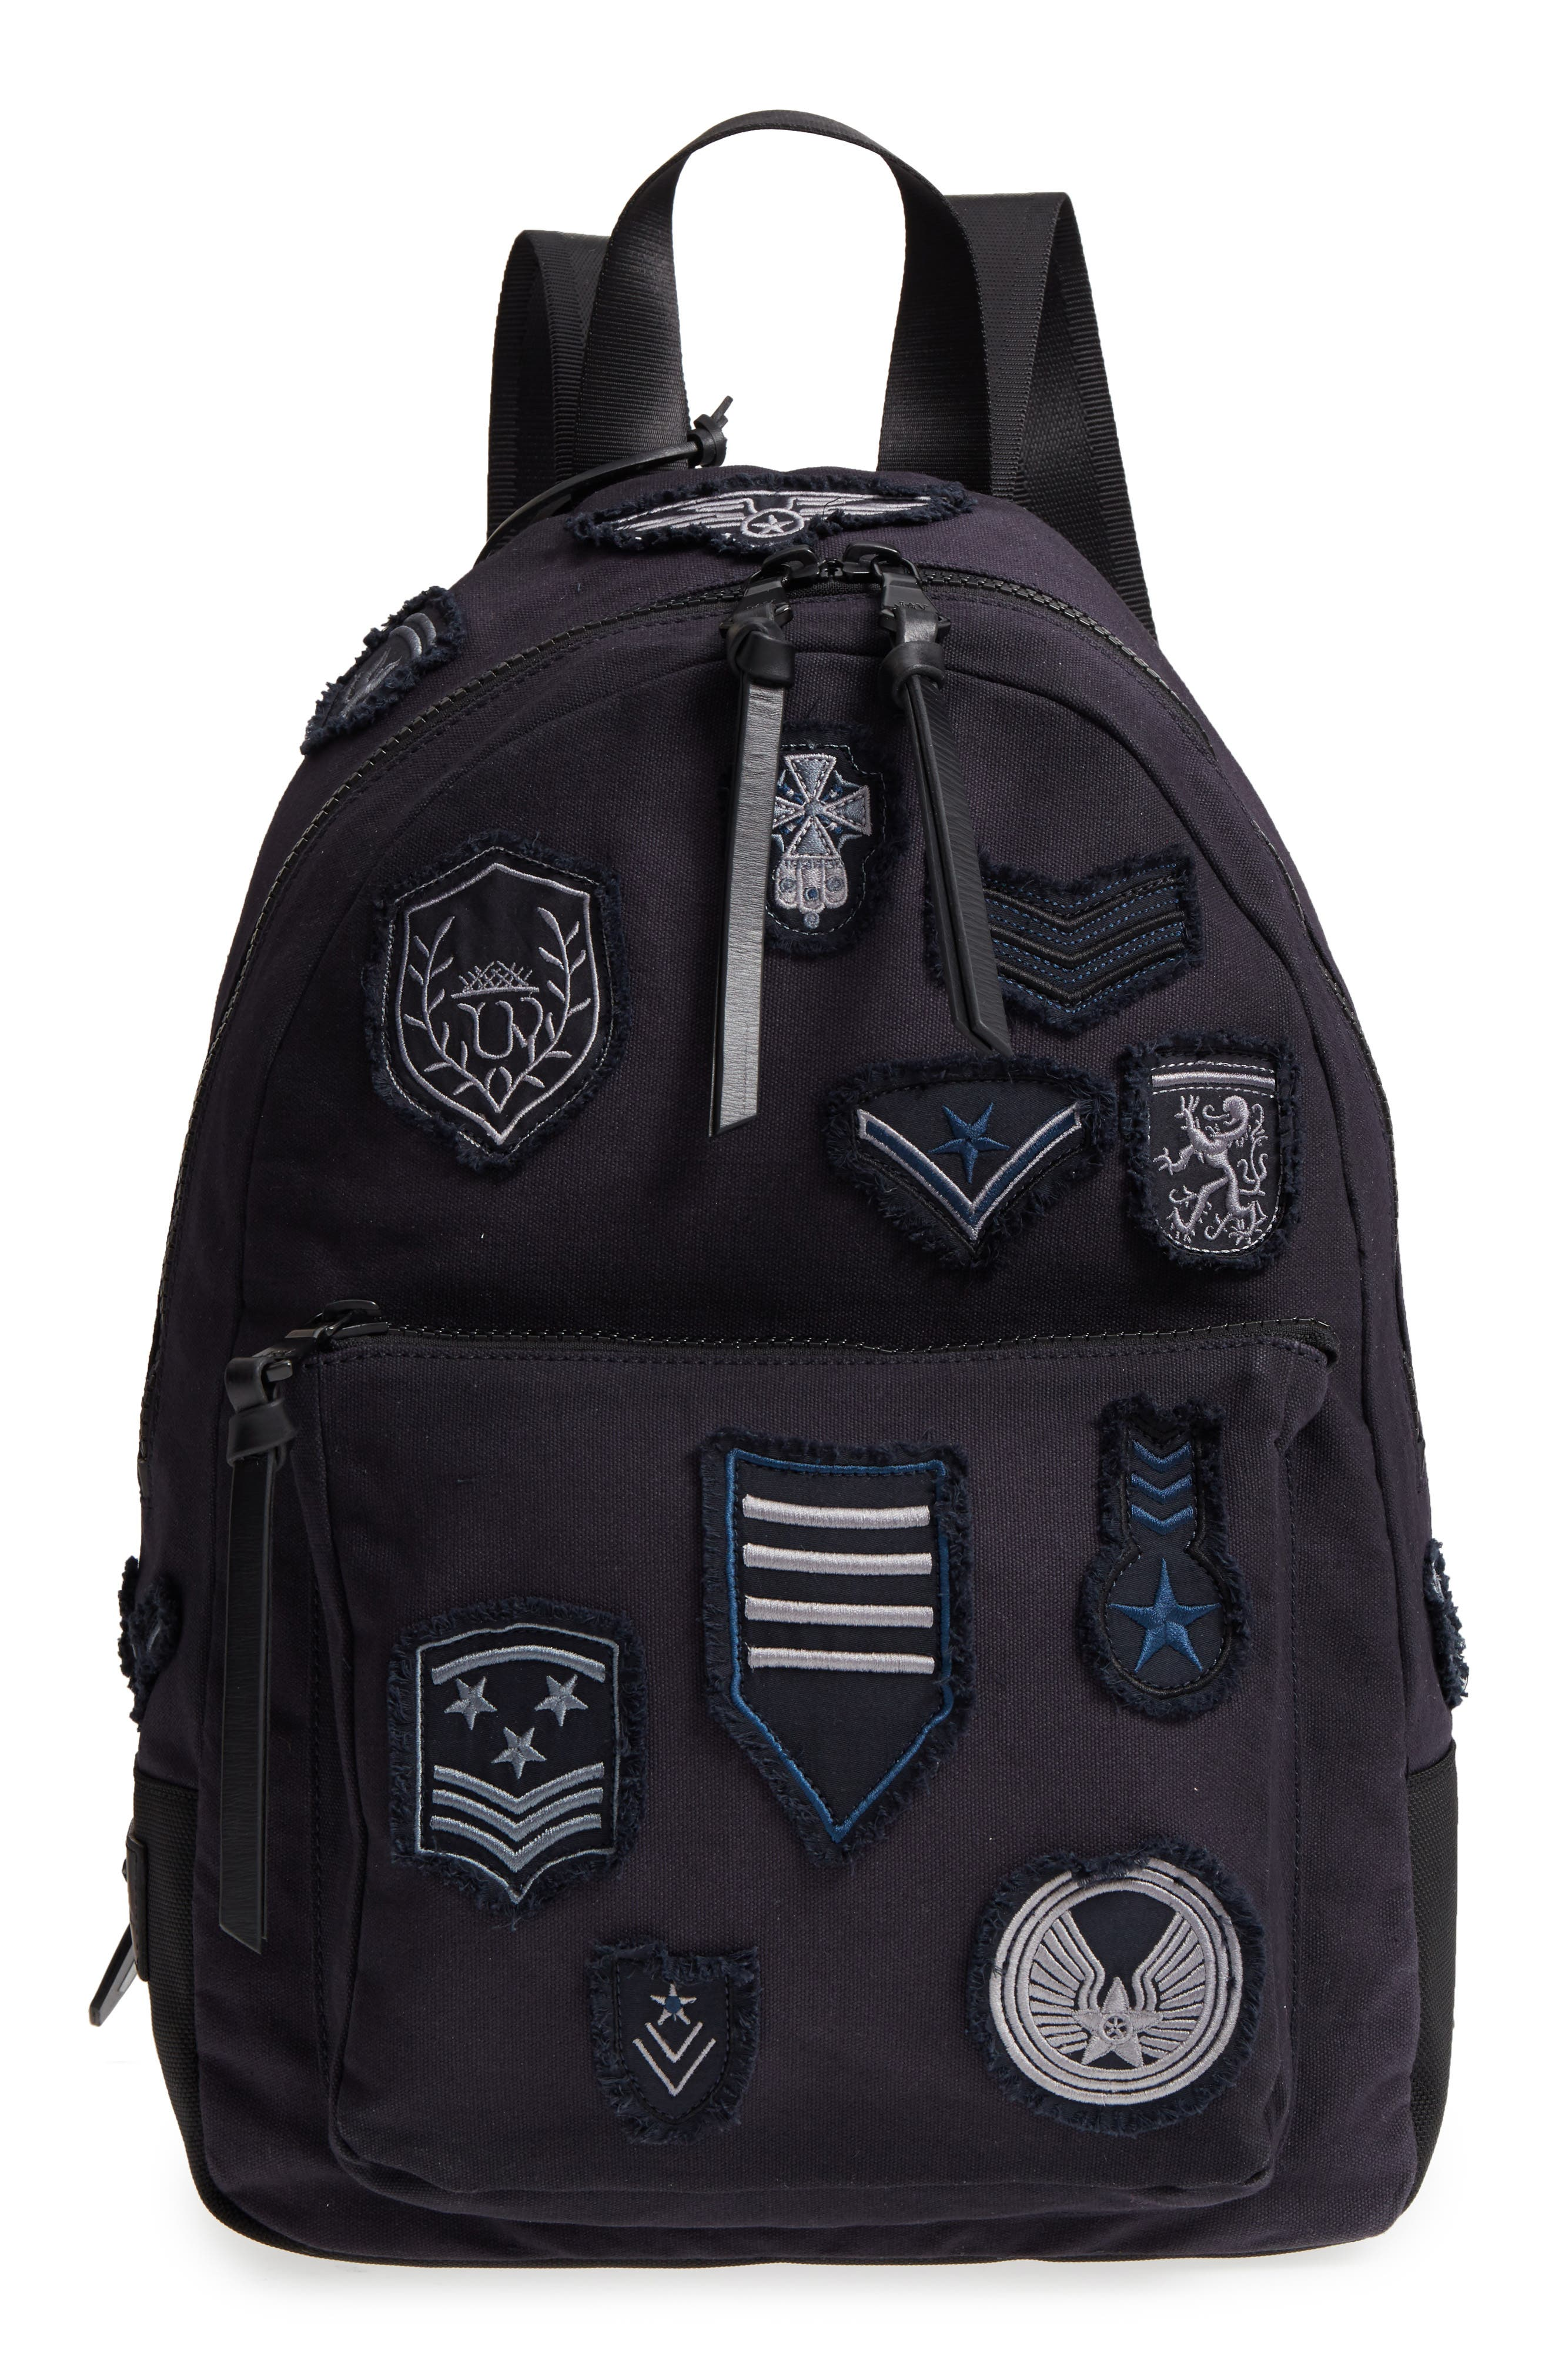 Gibson Patch Backpack,                         Main,                         color,